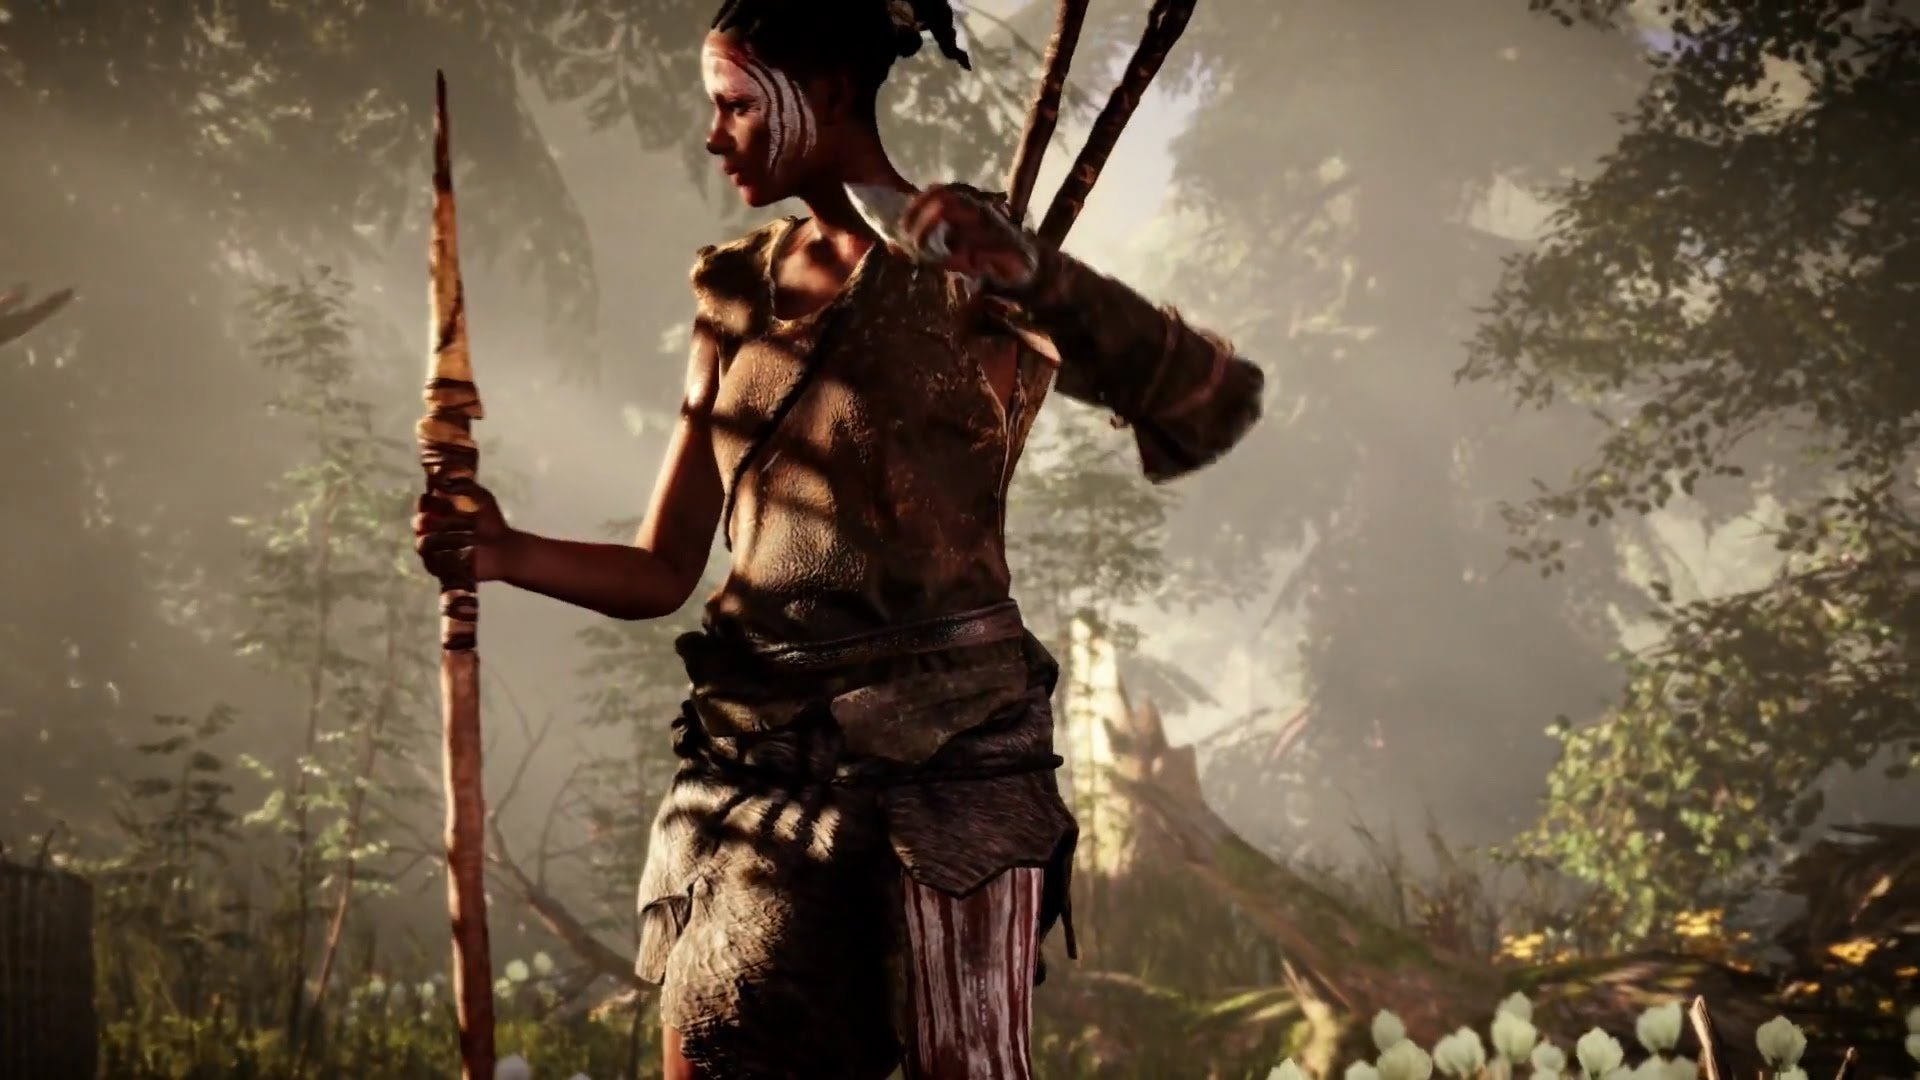 Far Cry Primal Wallaper Archive  Ubisoft Forums 1920x1080